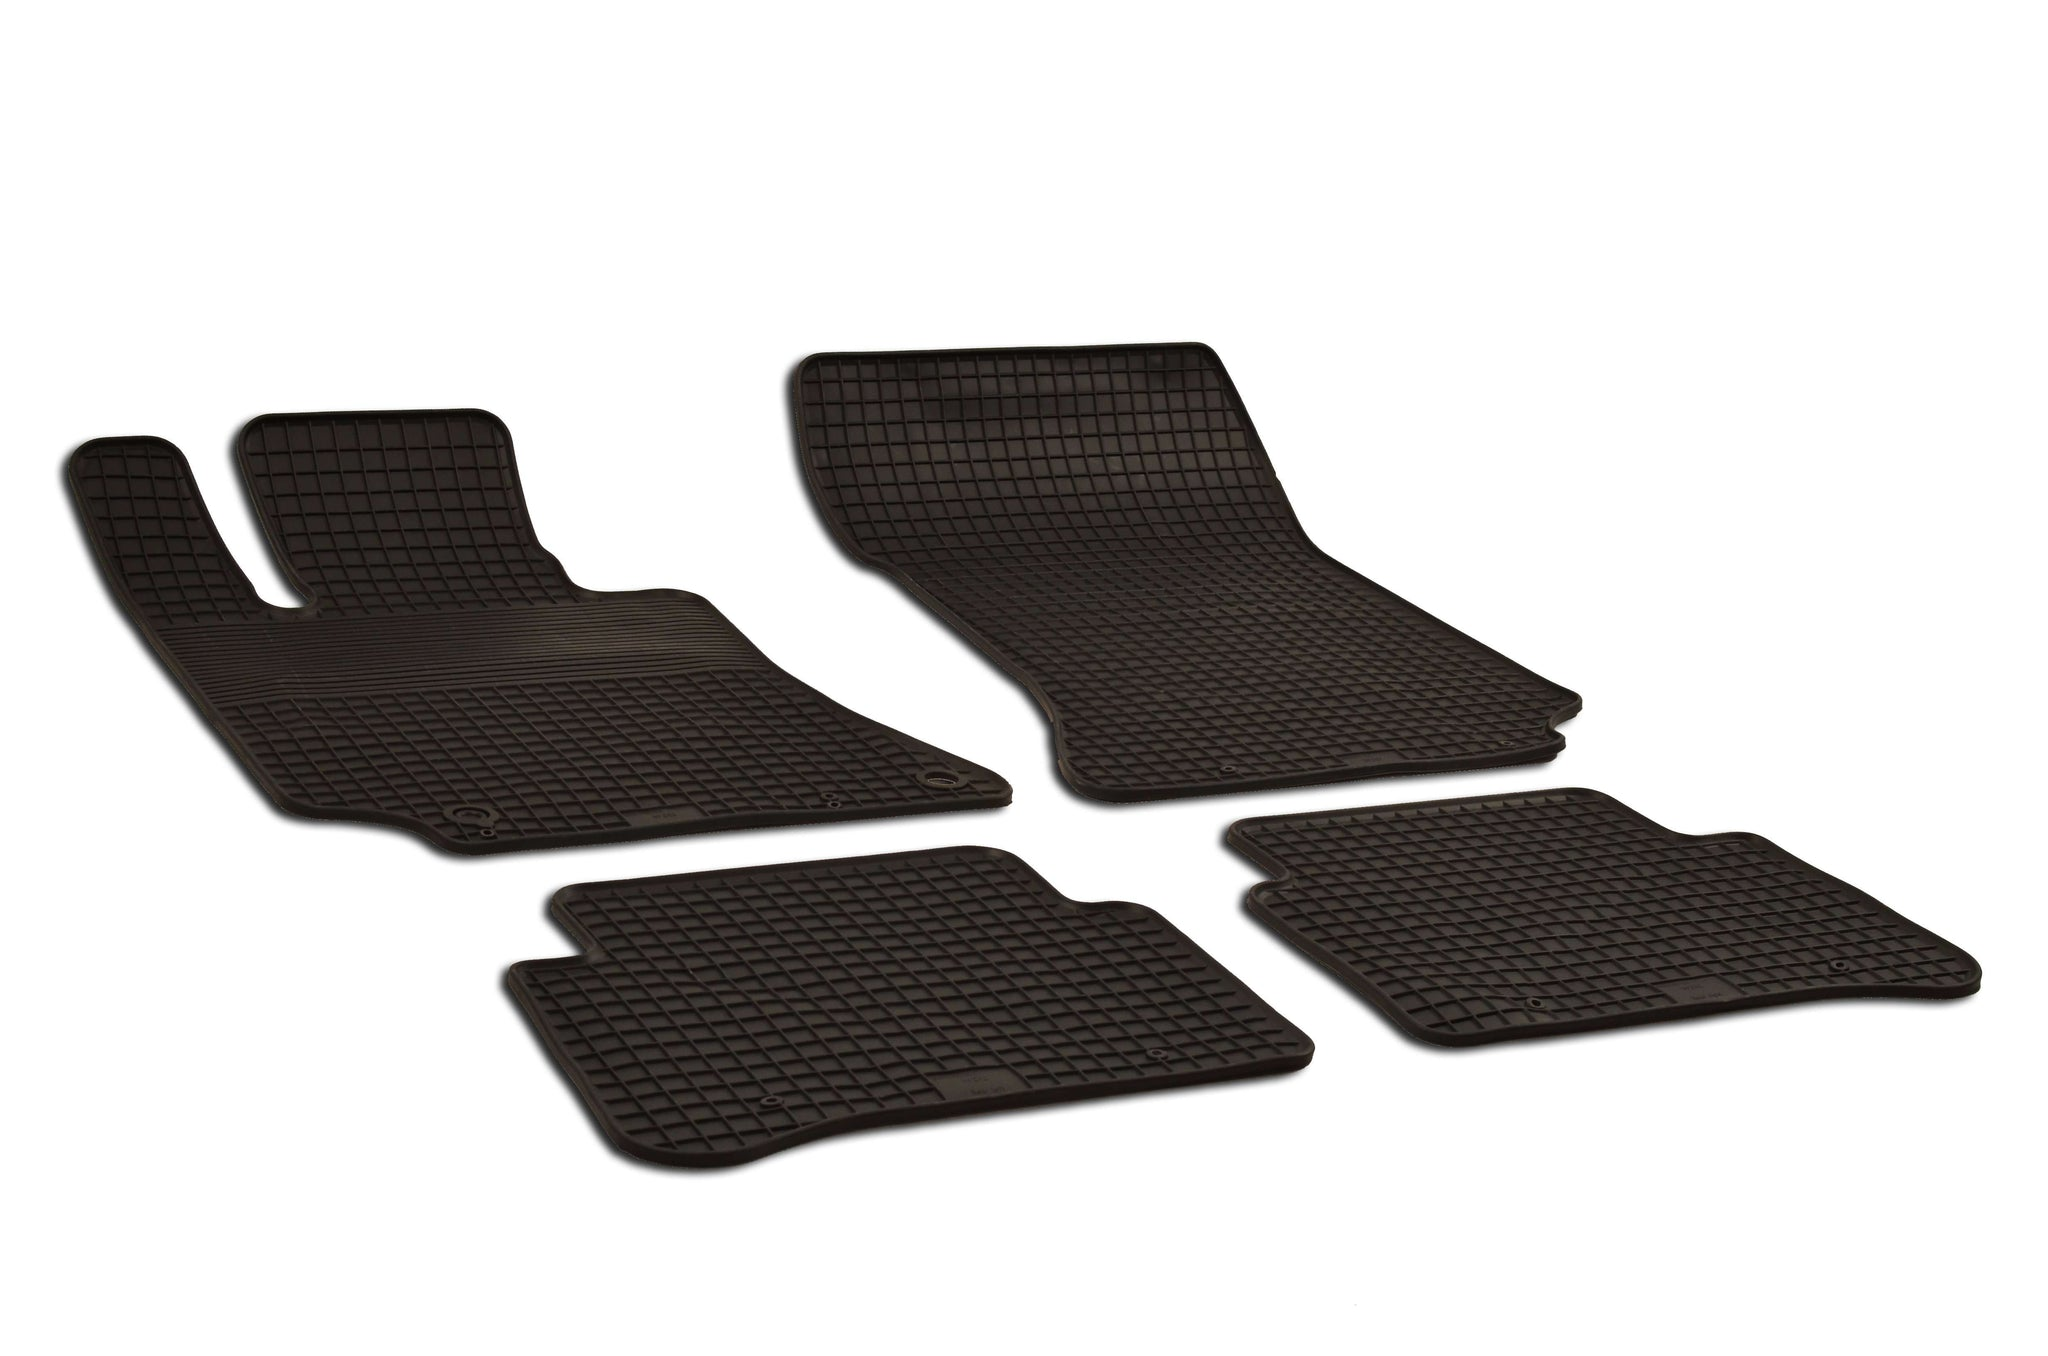 Mercedes E300 2015 Sedan 212.080 Set of 4 Black Rubber OE Fit All Weather Car Floor Mats